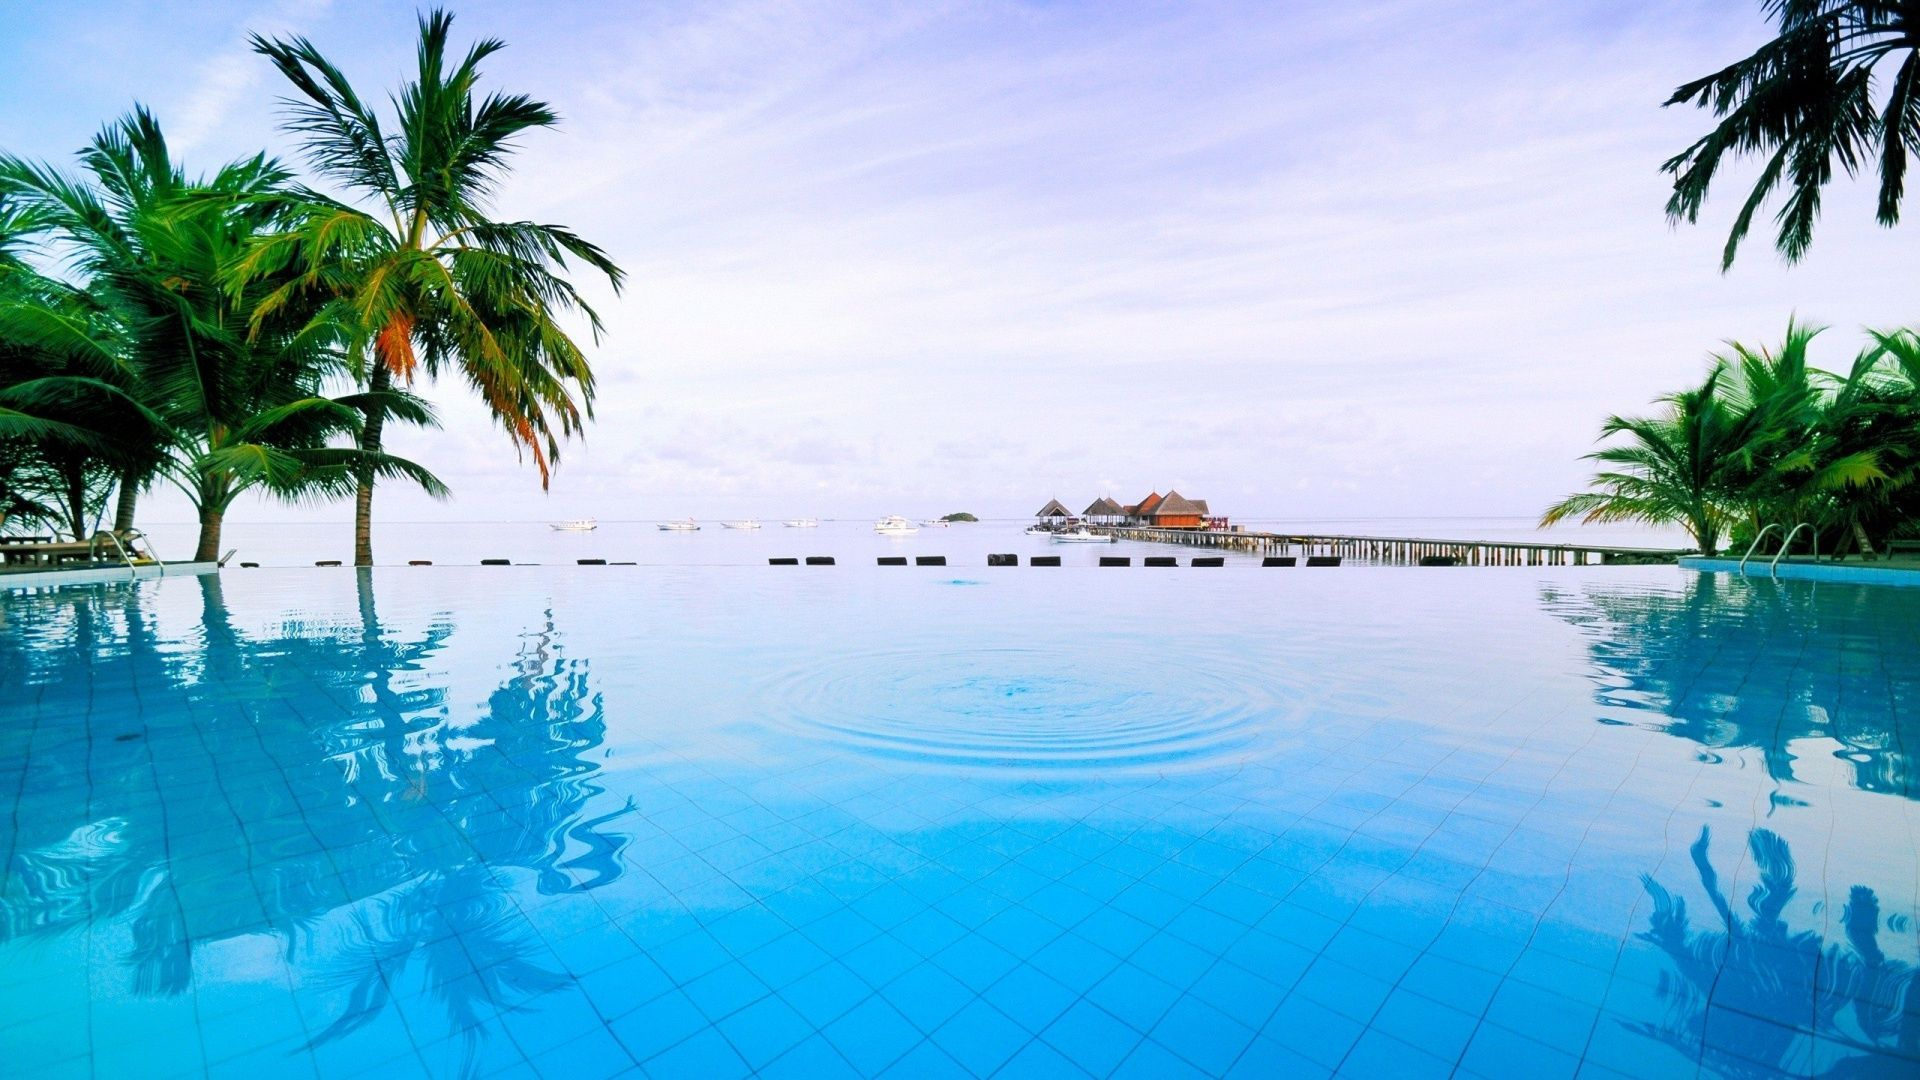 Palm Trees Resort Nature Tropical Pool Wallpaper 720x1520 Download And Share Beautiful Image In Best Availa Tropical Pool Holiday Wallpaper Tropical Resort